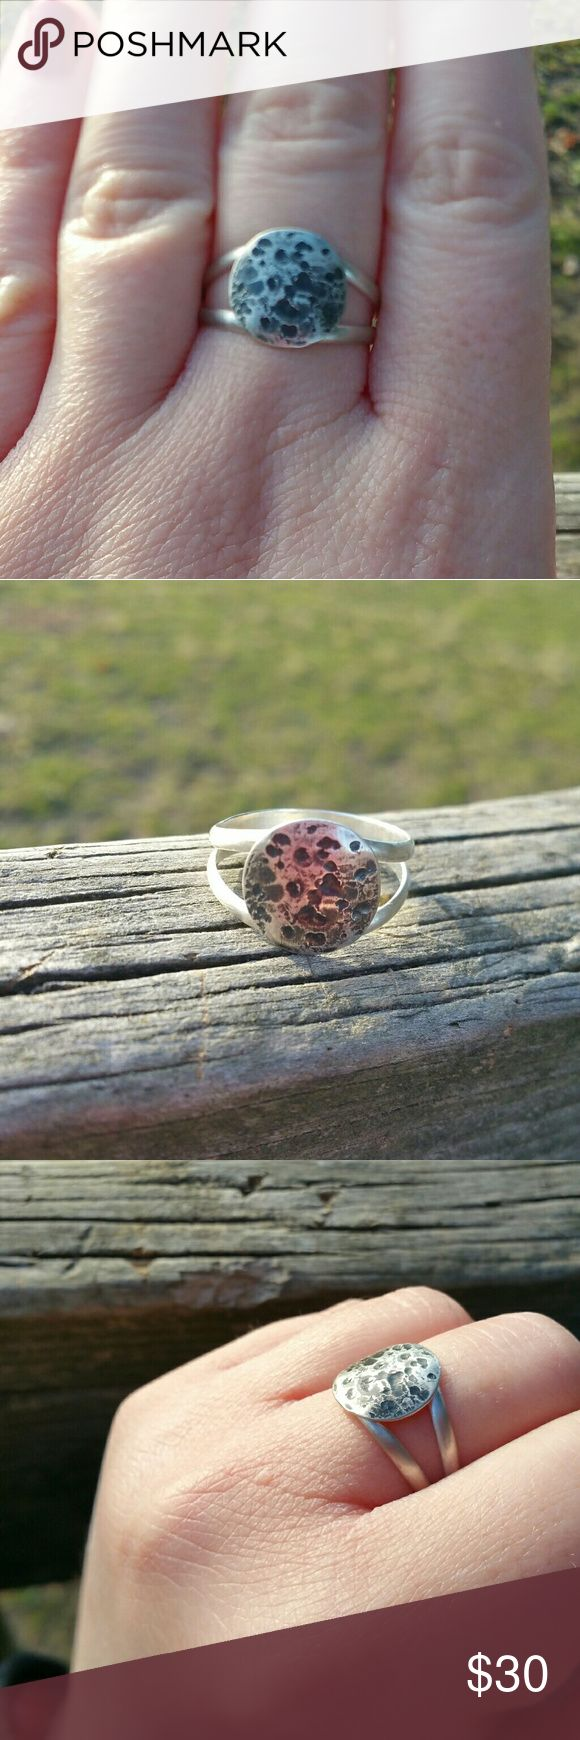 NWOT full moon sterling silver ring size 8.75 Brand new silversmithed sterling silver full moon ring. Size 8.75, fits a little large, should definitely fit a size 9. Comes with original gift box! Handmade Jewelry Rings